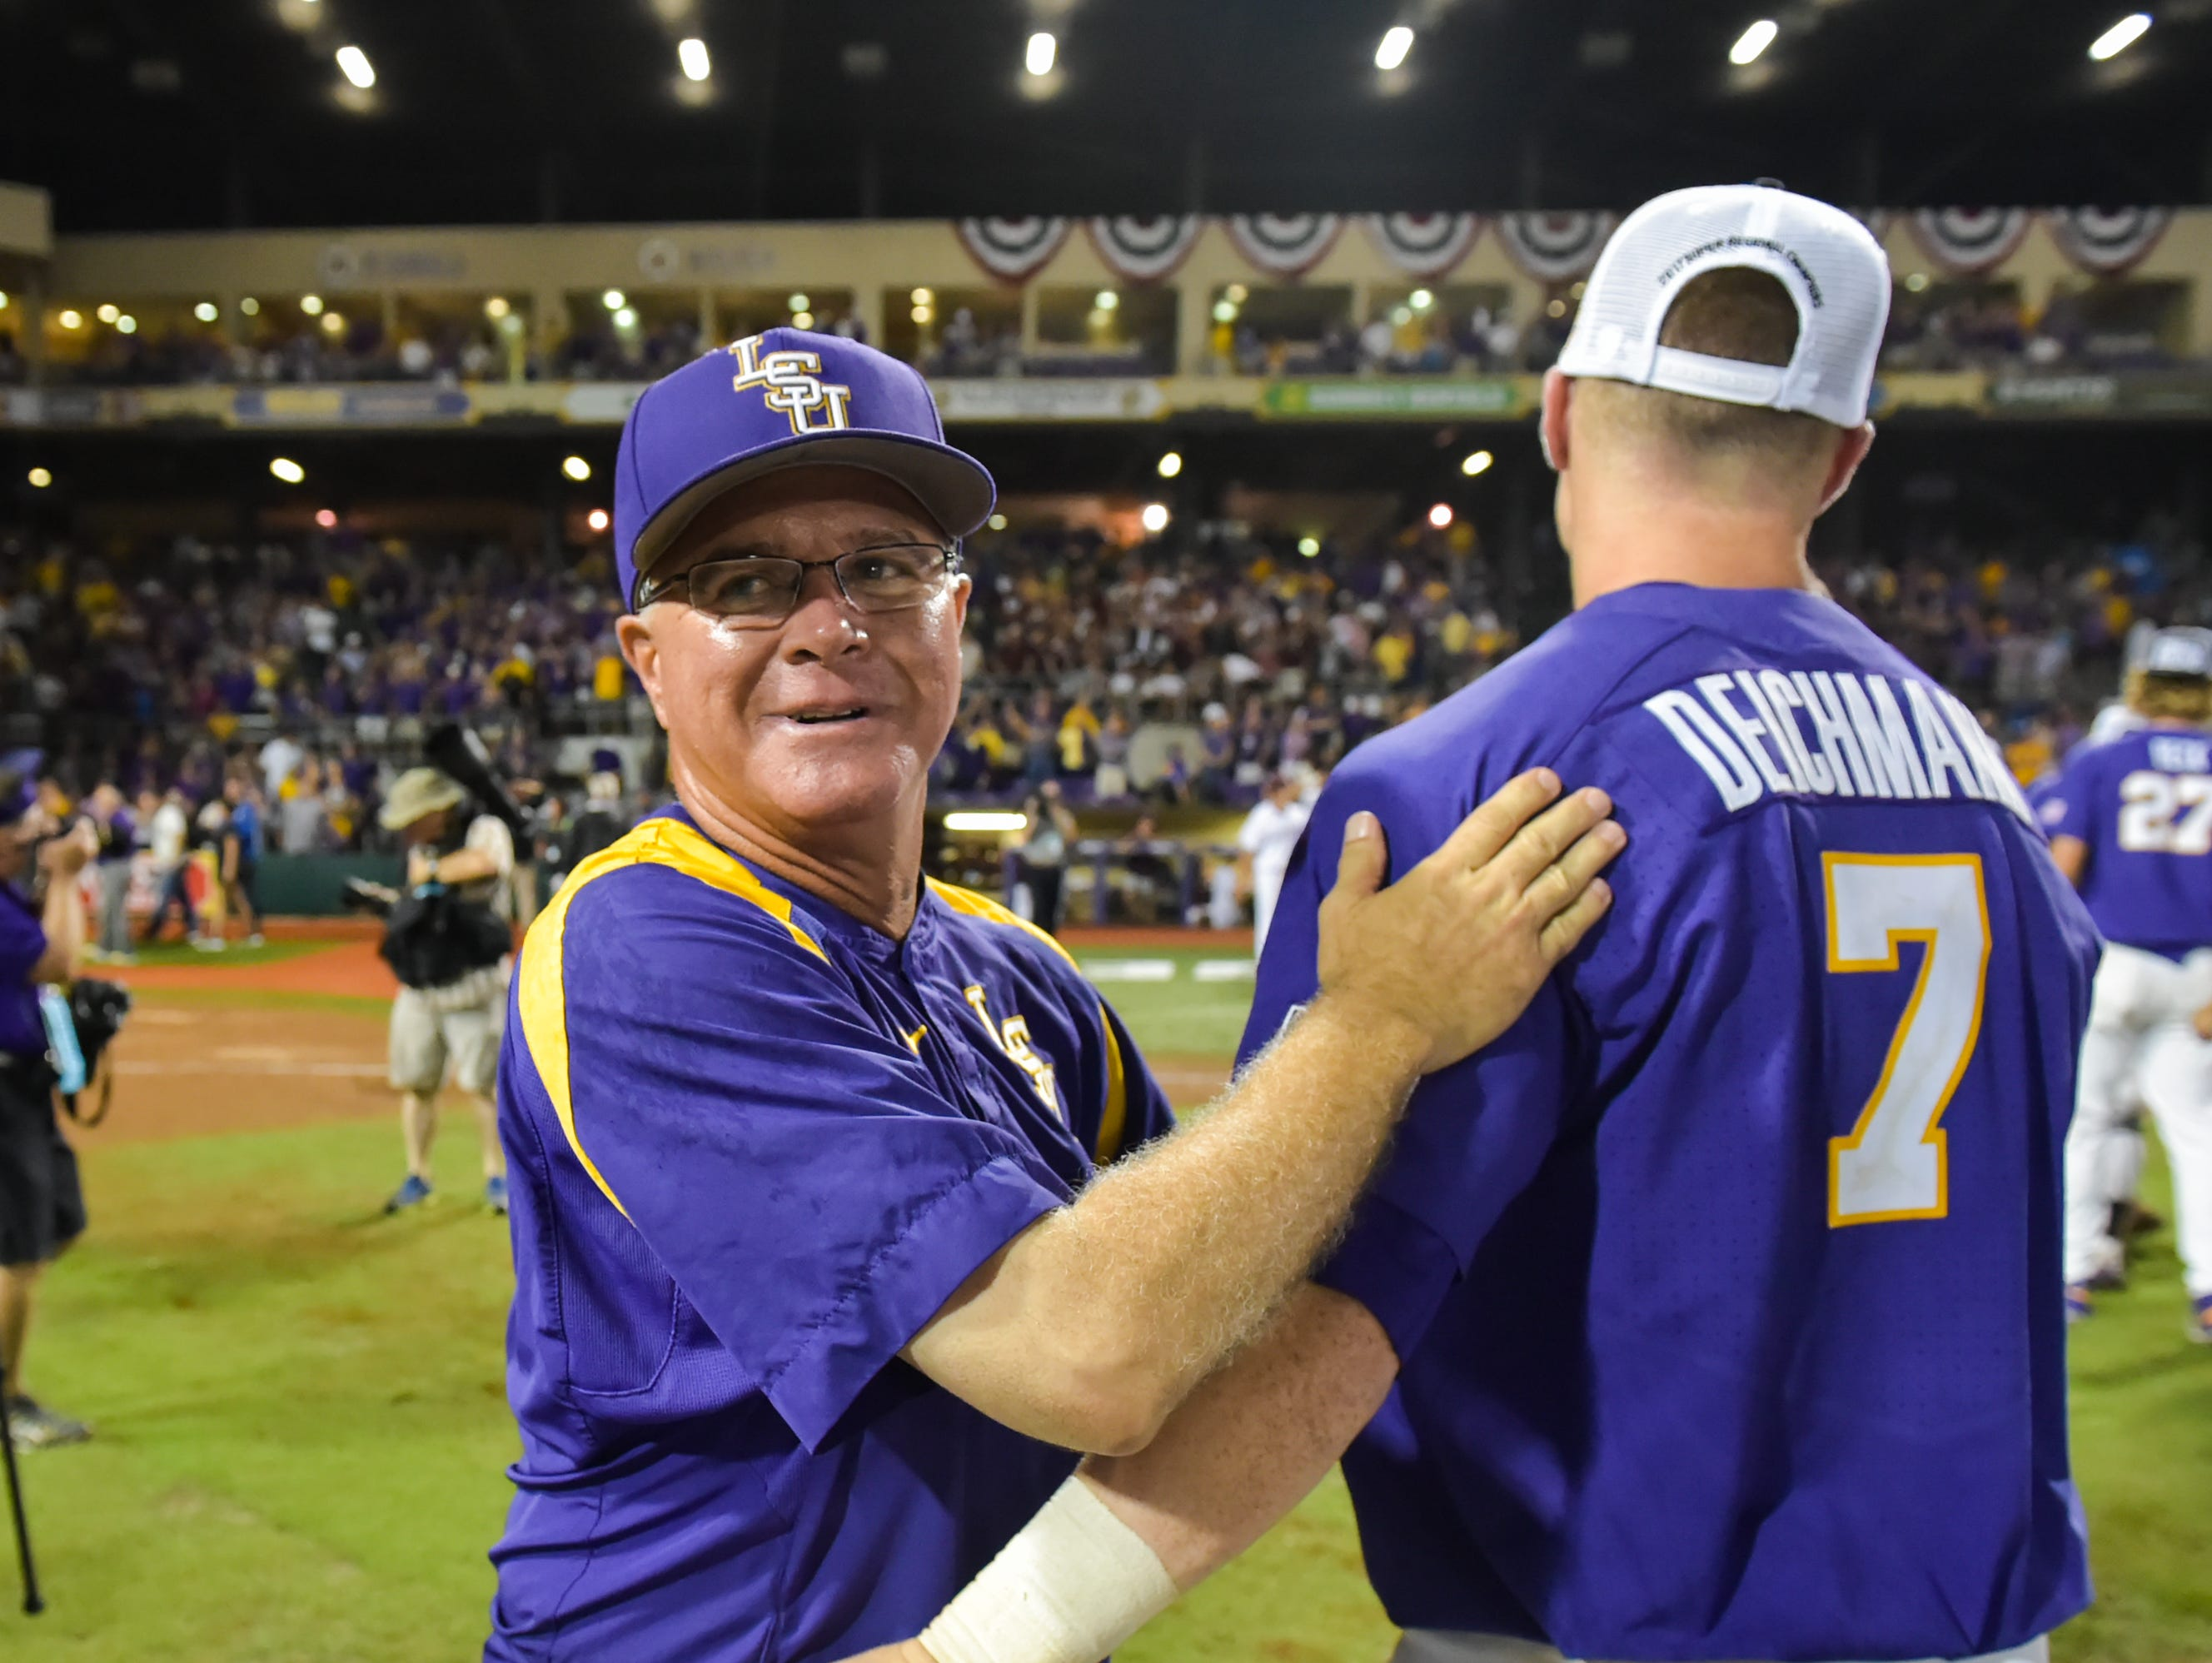 Paul Mainieri celebrates with players as LSU beats Mississippi State 14-4 in game 2 of the NCAA Super Regionals at Alex Box Stadium. - Sunday, June 11, 2017.